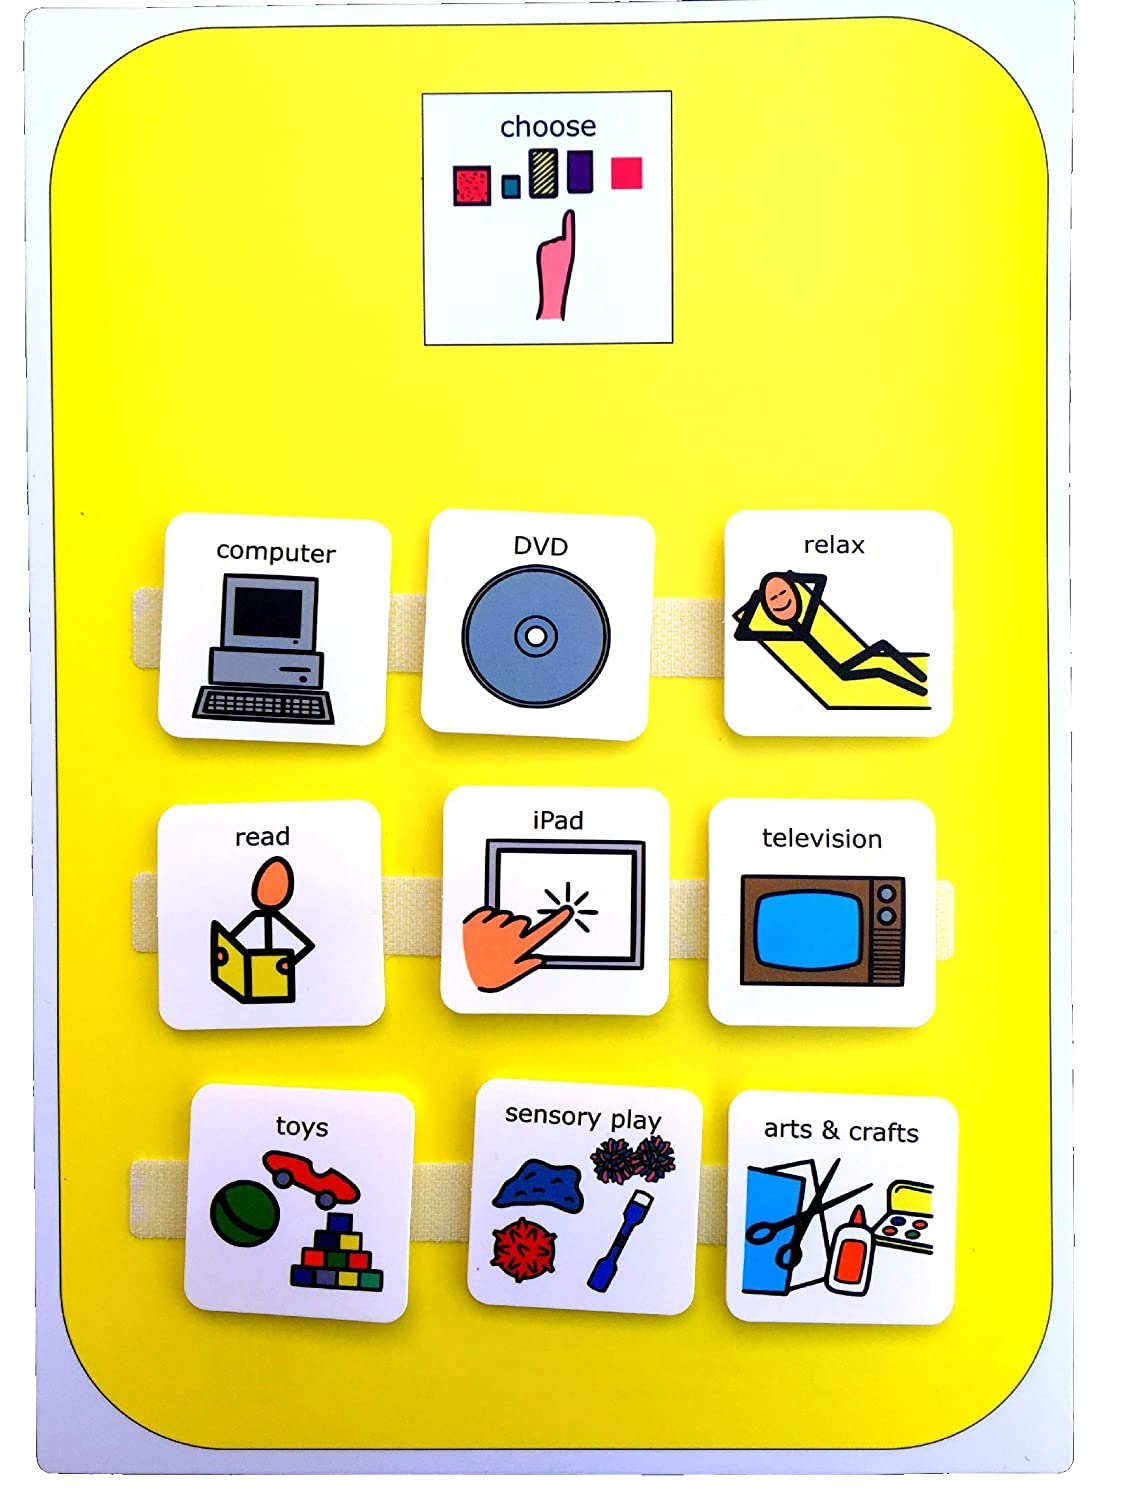 Amazon autism supplies and developments picture exchange amazon autism supplies and developments picture exchange communication system indoor activity choice board toys games buycottarizona